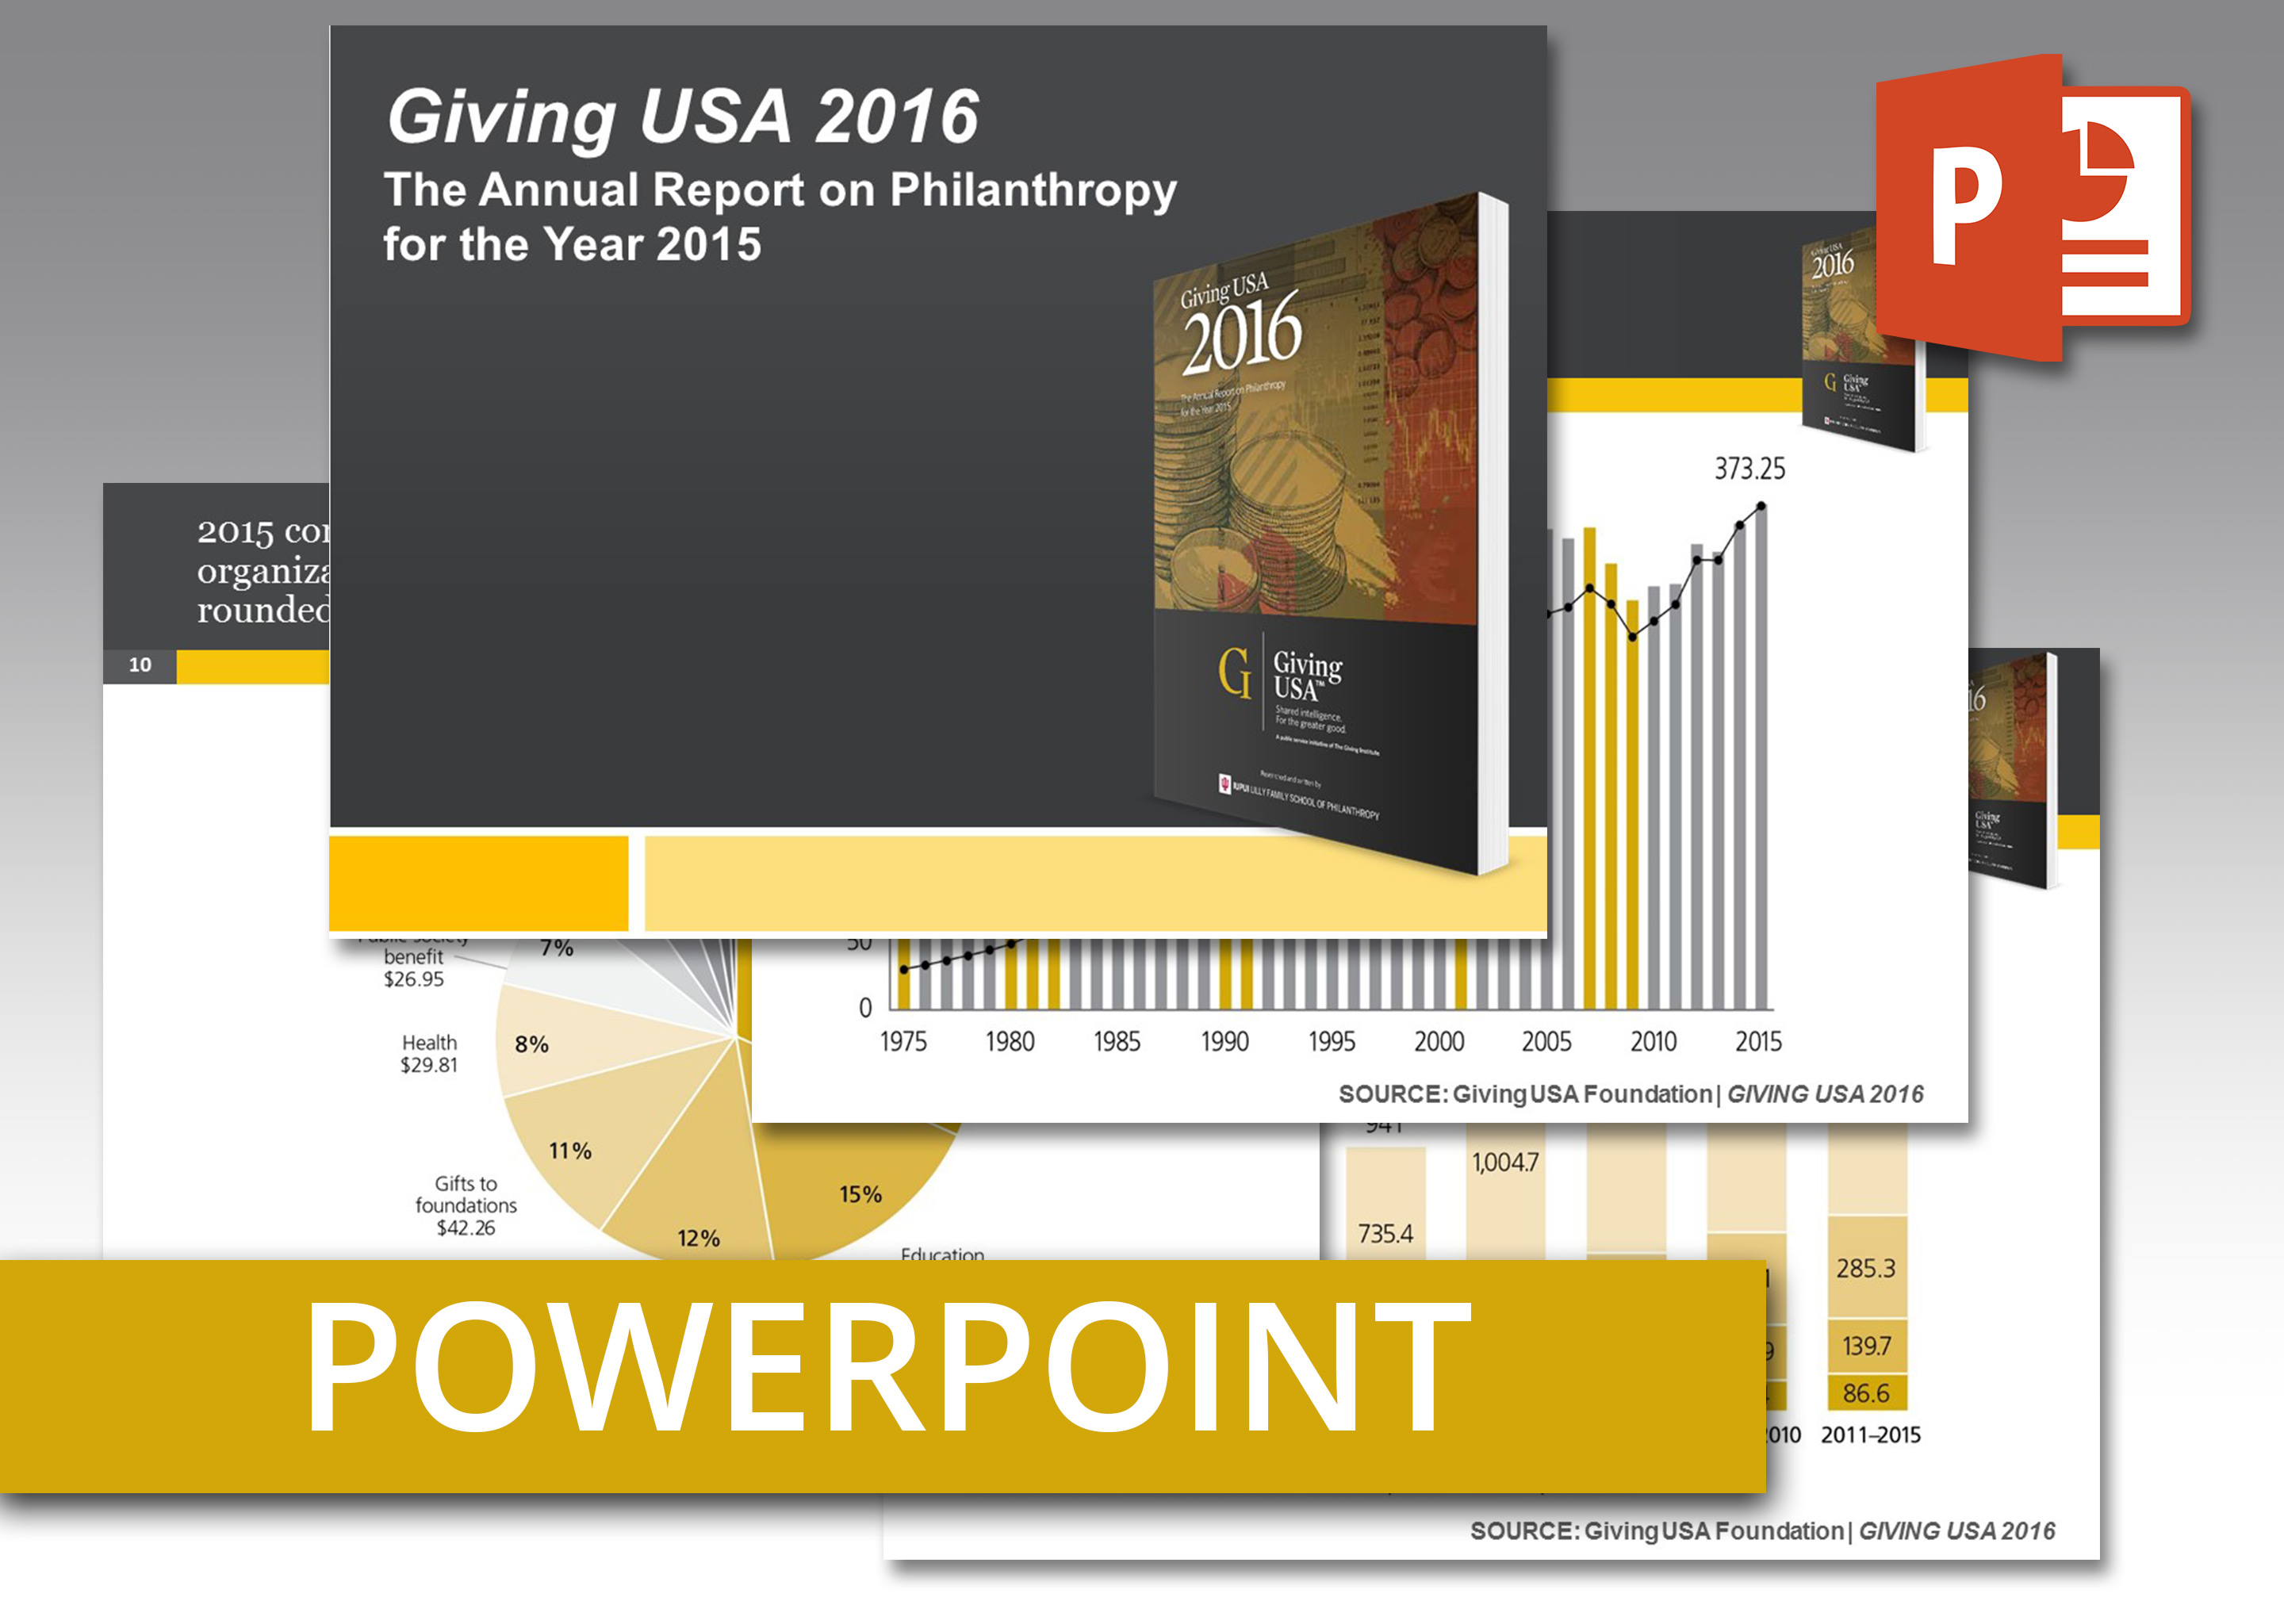 Coolmathgamesus  Terrific Giving Usa  Powerpoint An Easytouse Presentation Of Report  With Gorgeous Giving Usa  Powerpoint An Easytouse Presentation Of Report Findings Including Talking Points With Lovely Modul Powerpoint  Also Slideshare Powerpoint Presentations In Addition How To Copy From Pdf To Powerpoint And Powerpoint On Cyber Bullying As Well As Meaning Of Microsoft Powerpoint Additionally Wto Powerpoint From Givingusaorg With Coolmathgamesus  Gorgeous Giving Usa  Powerpoint An Easytouse Presentation Of Report  With Lovely Giving Usa  Powerpoint An Easytouse Presentation Of Report Findings Including Talking Points And Terrific Modul Powerpoint  Also Slideshare Powerpoint Presentations In Addition How To Copy From Pdf To Powerpoint From Givingusaorg